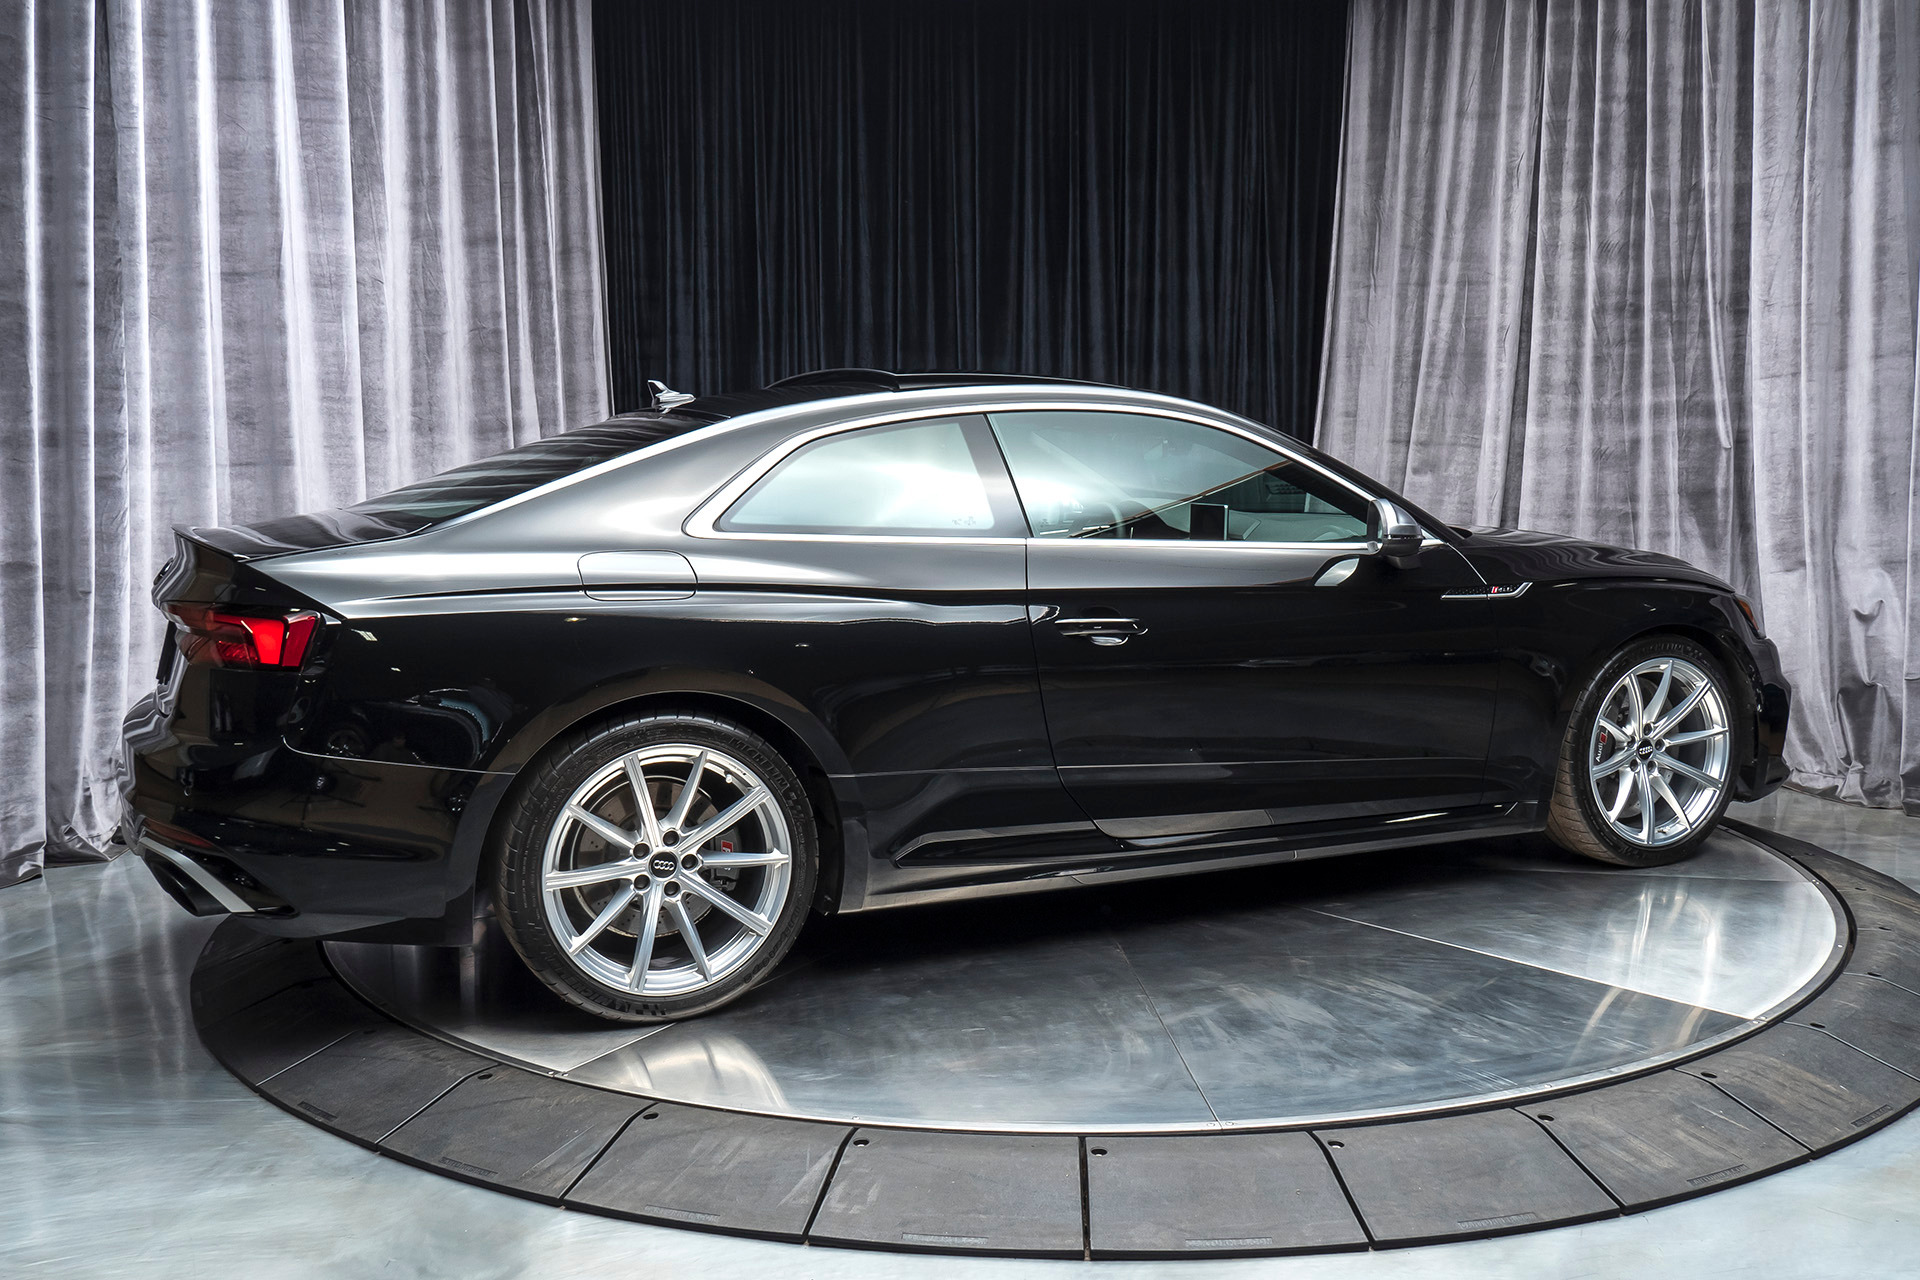 Used-2019-Audi-RS-5-29T-quattro-Coupe-MSRP-87K-DYNAMIC-PLUS-PACKAGE